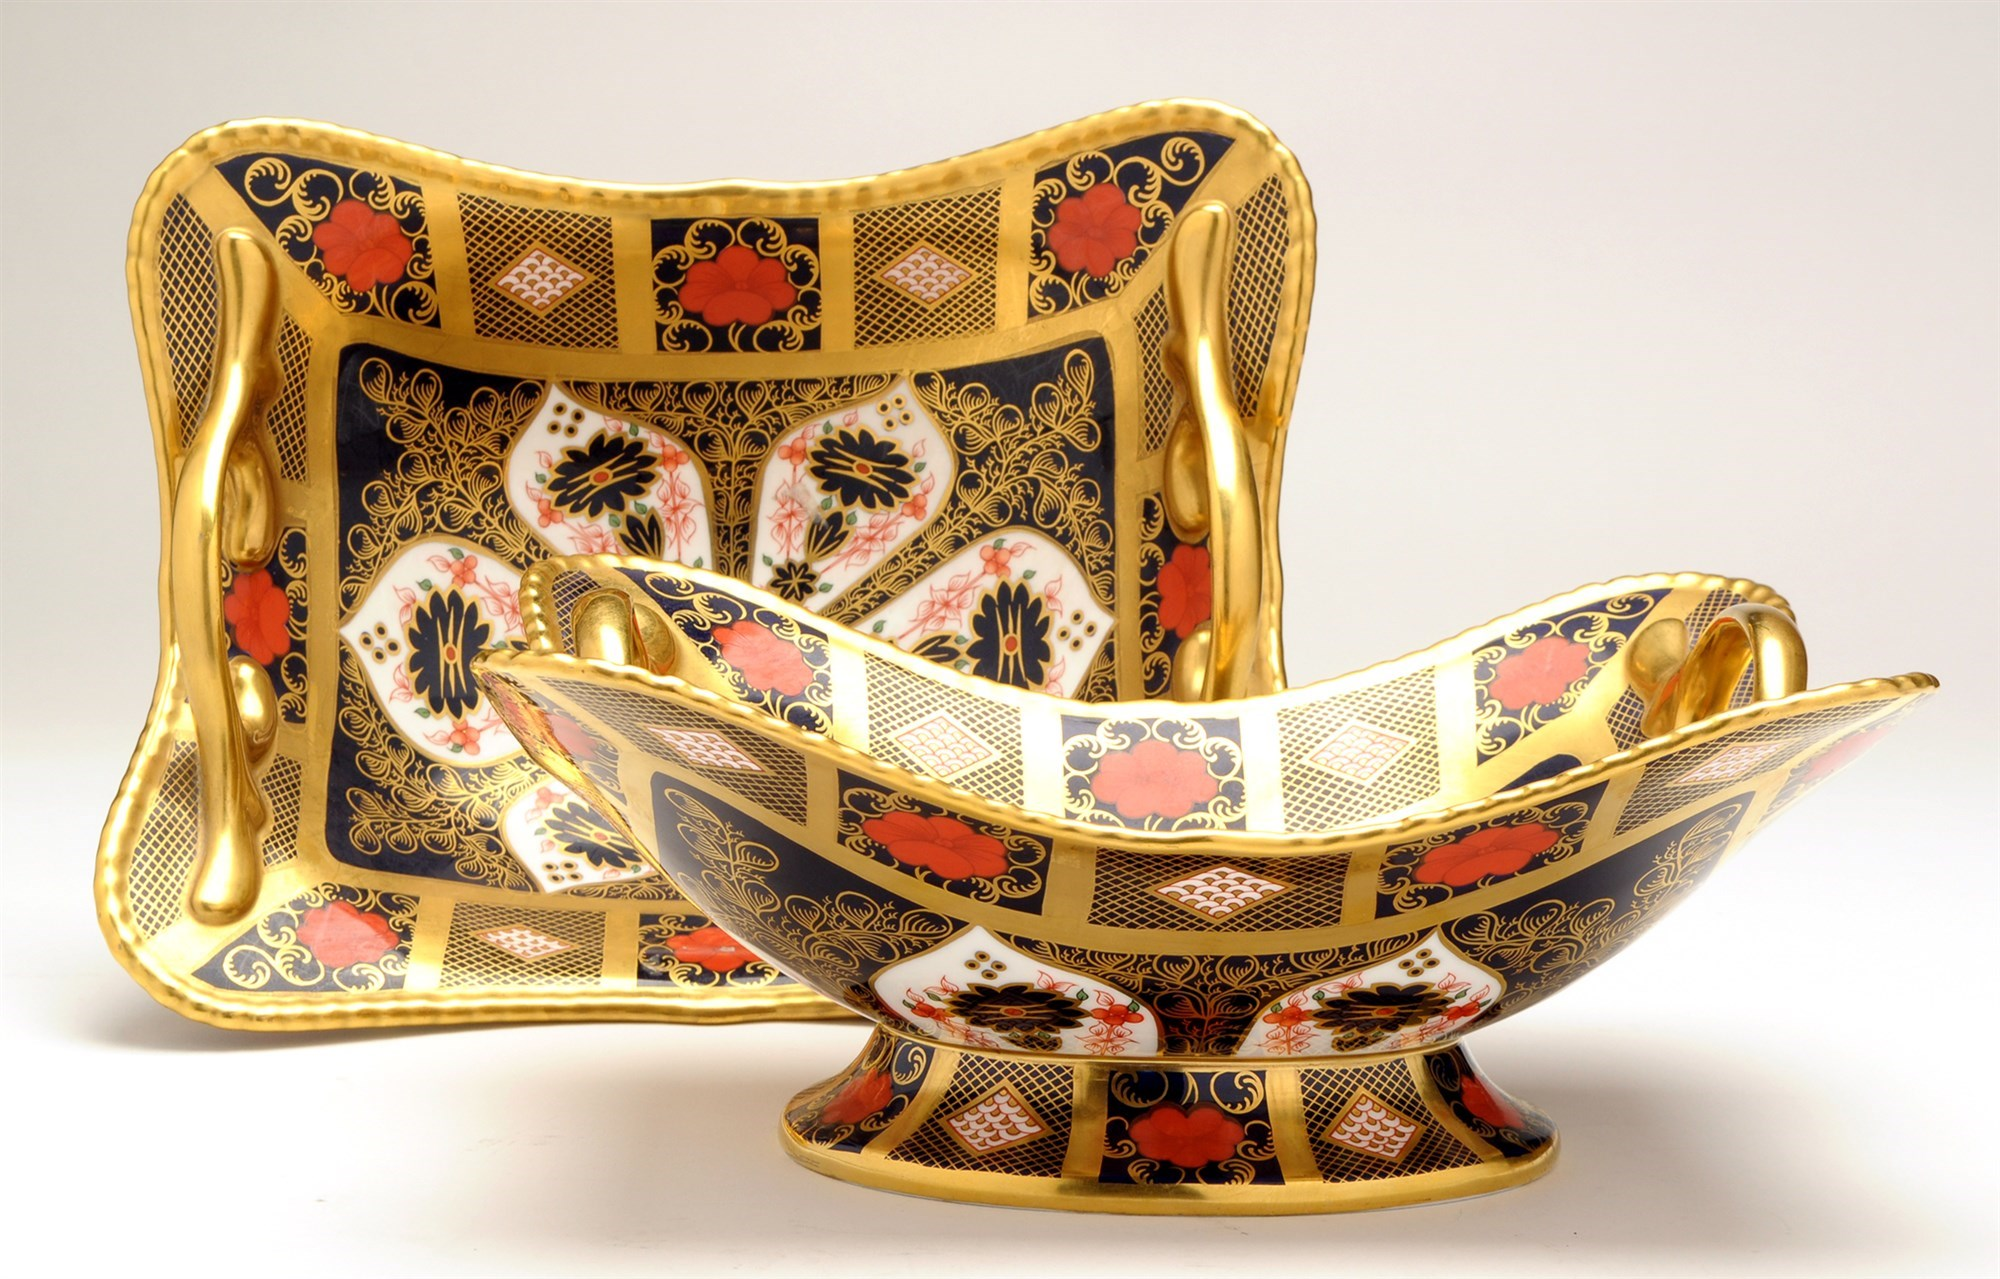 Royal Crown Derby: a pair of handled compotes in Old Imari